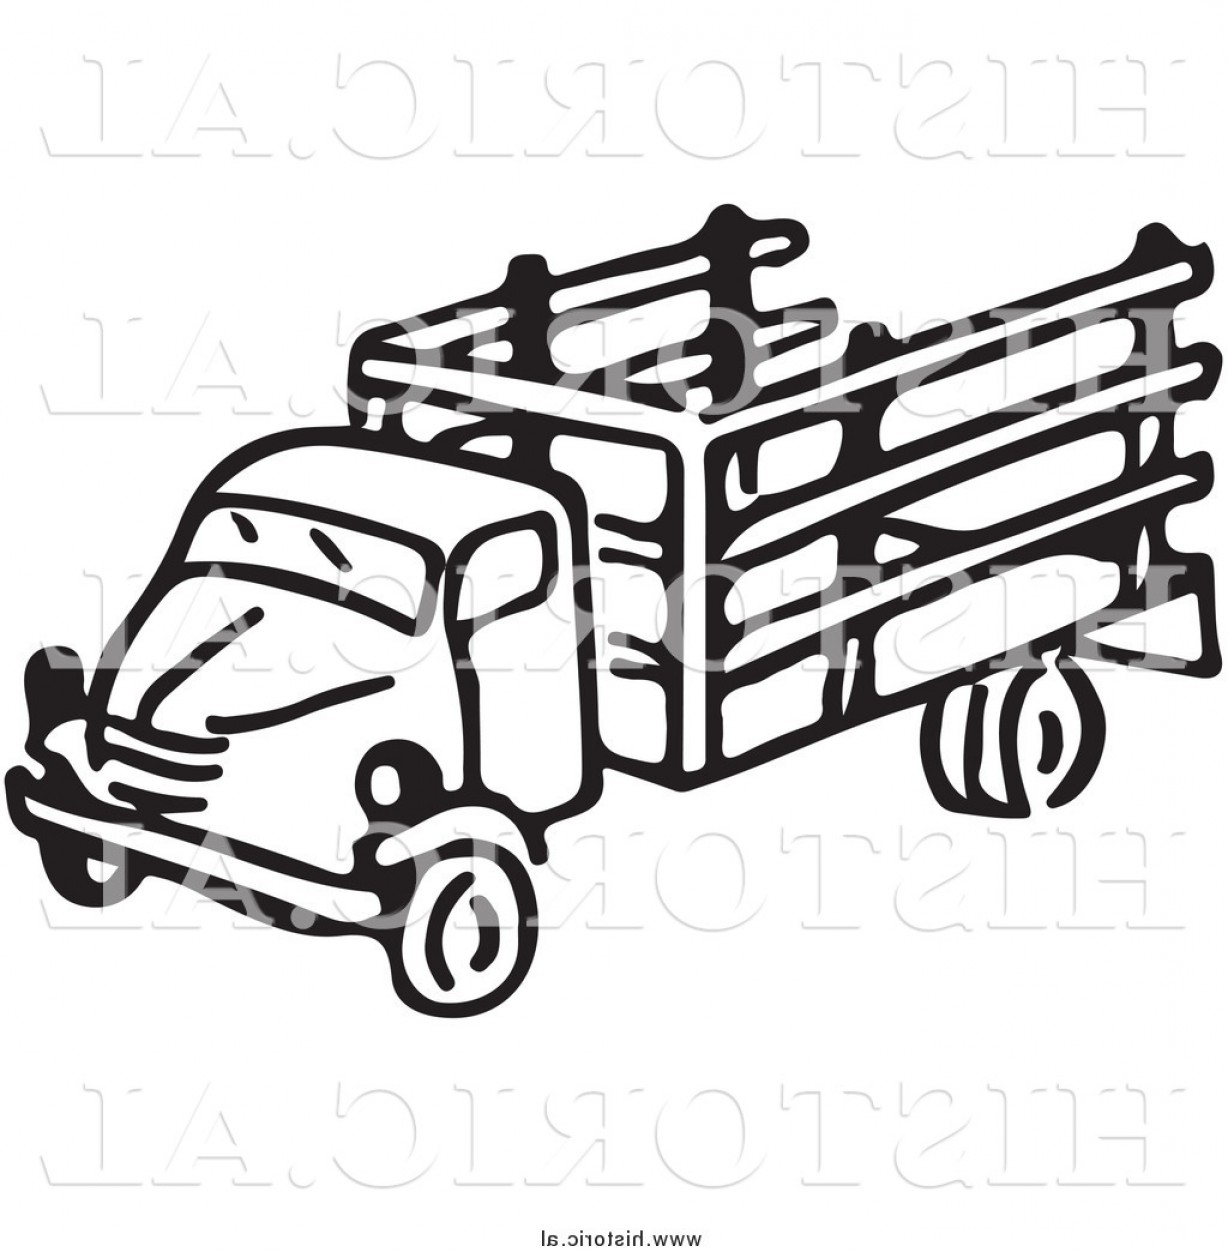 Combine harvester clipart black and white banner library library Combine Harvester Drawing | Free download best Combine Harvester ... banner library library